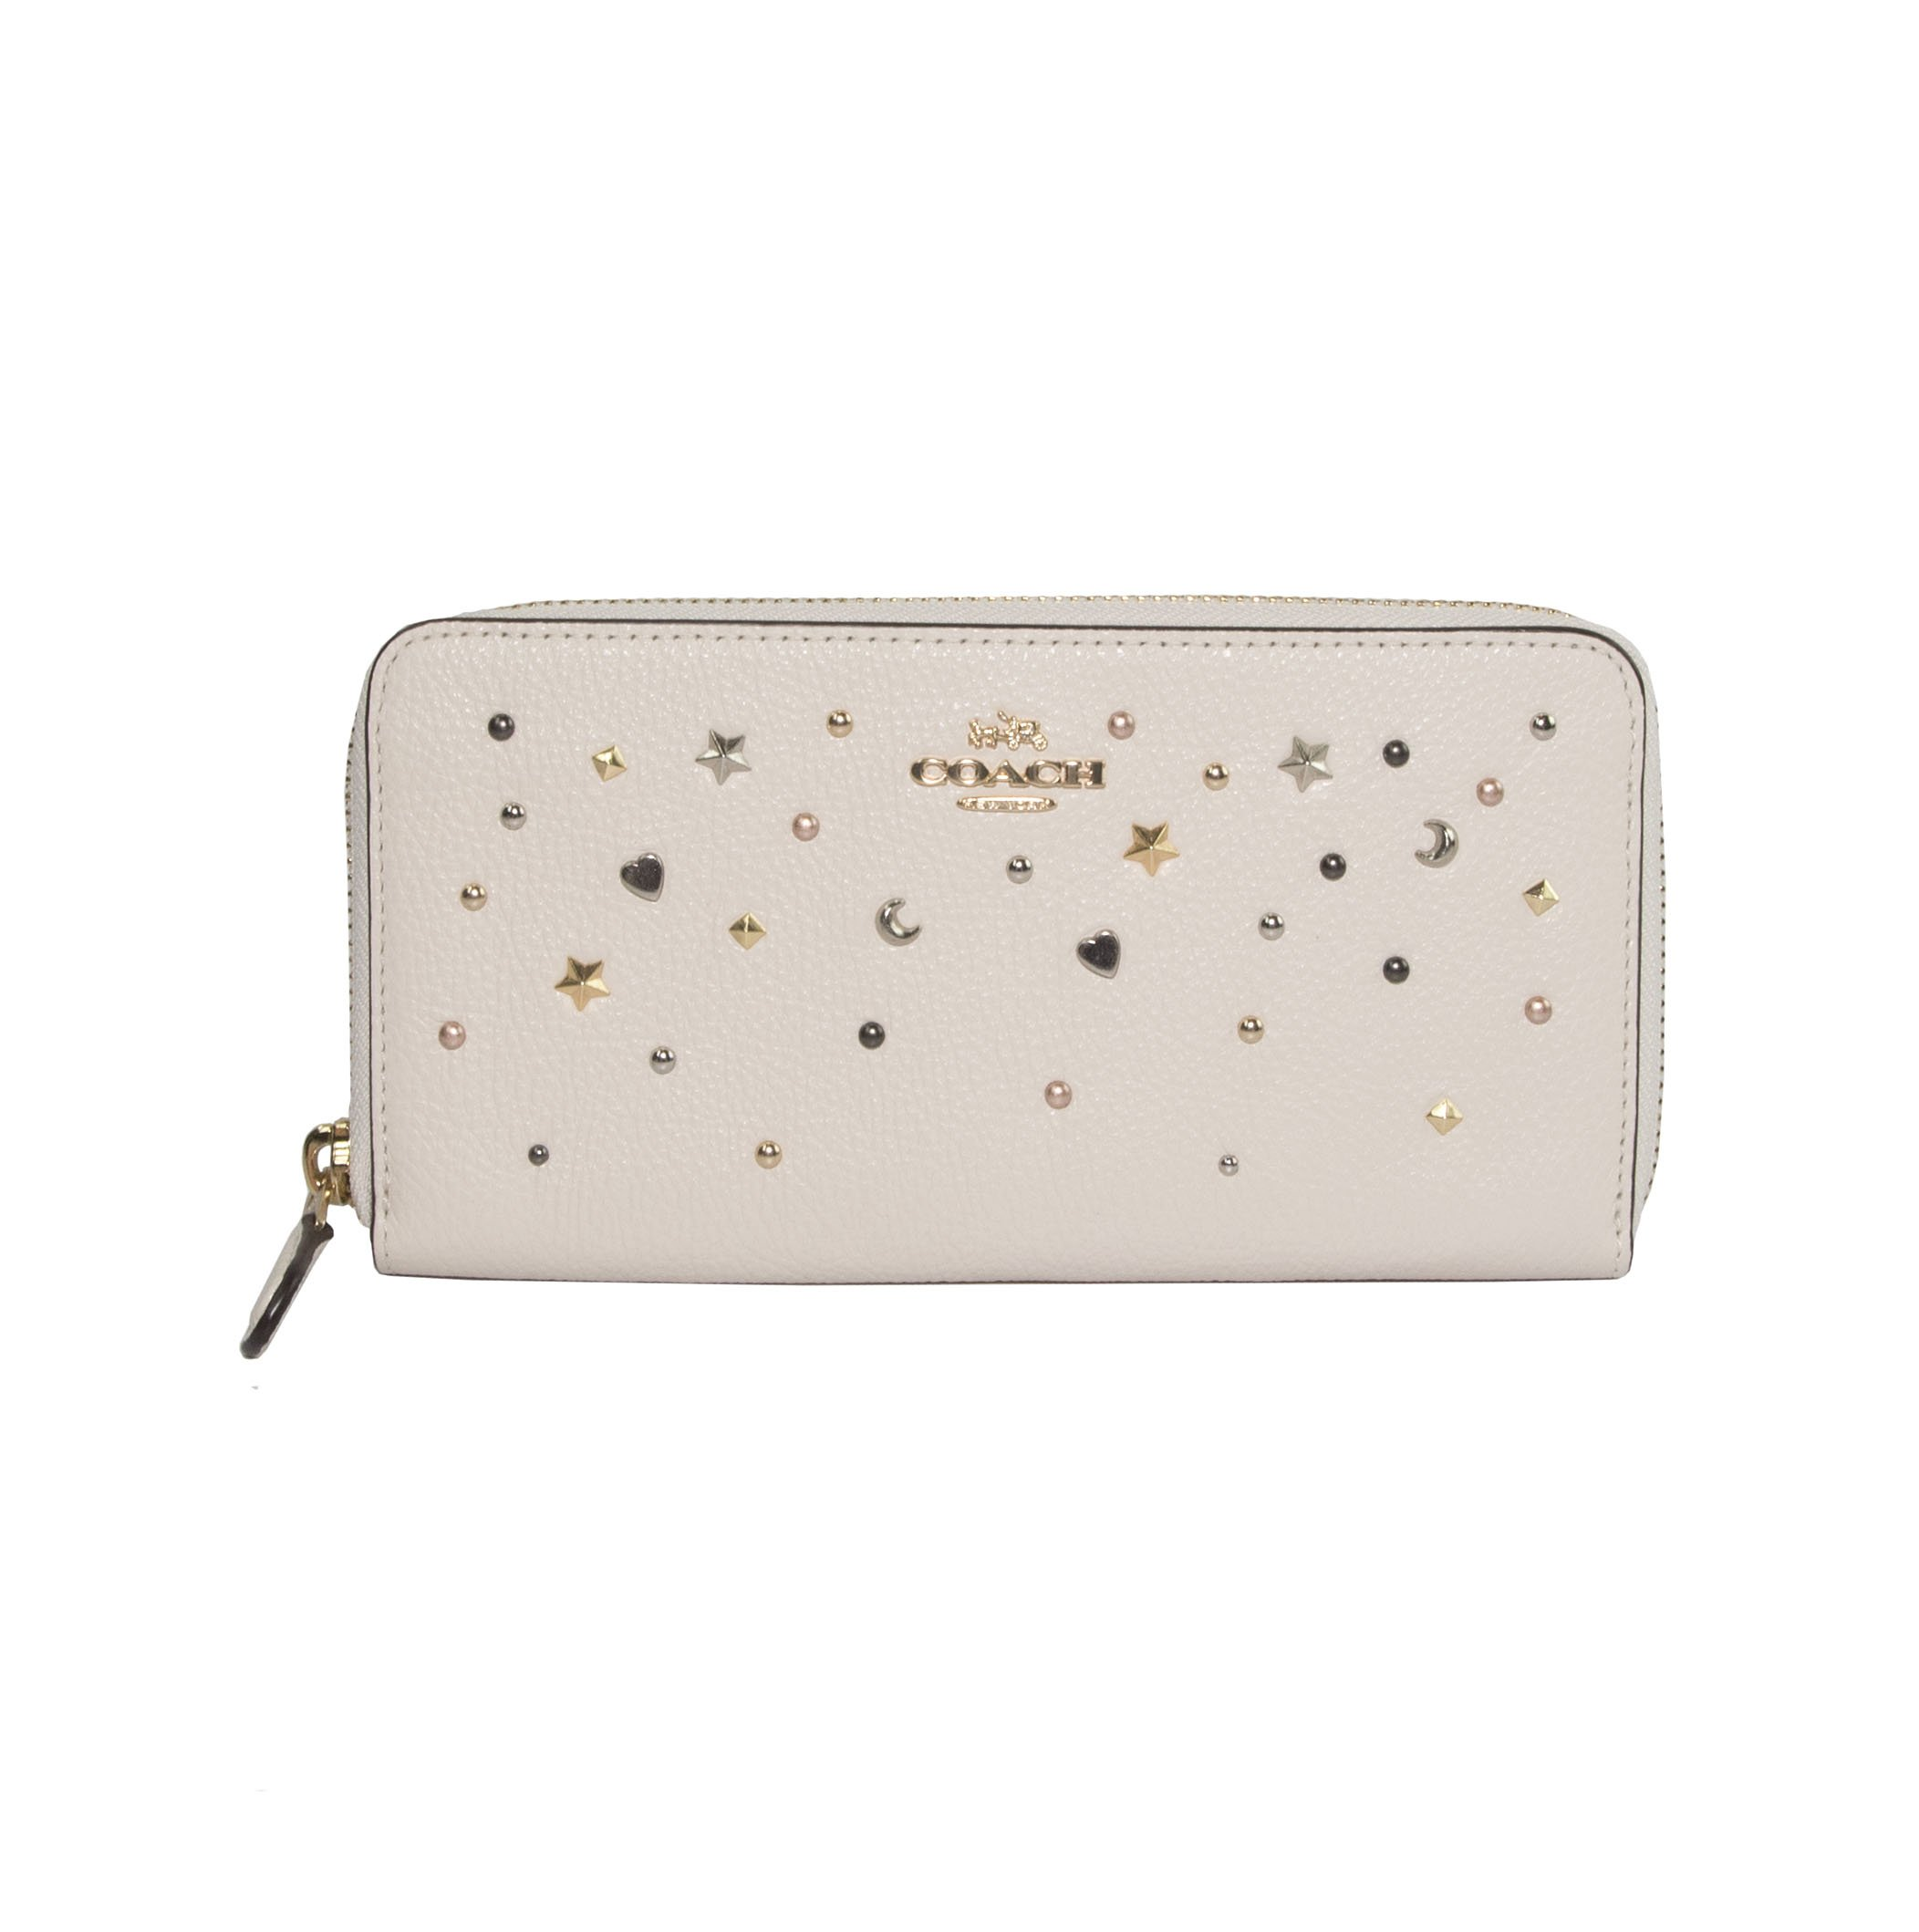 Coach Stardust Star Studded Chalk Pebbled Leather Zip Around Continental Wallet 22700